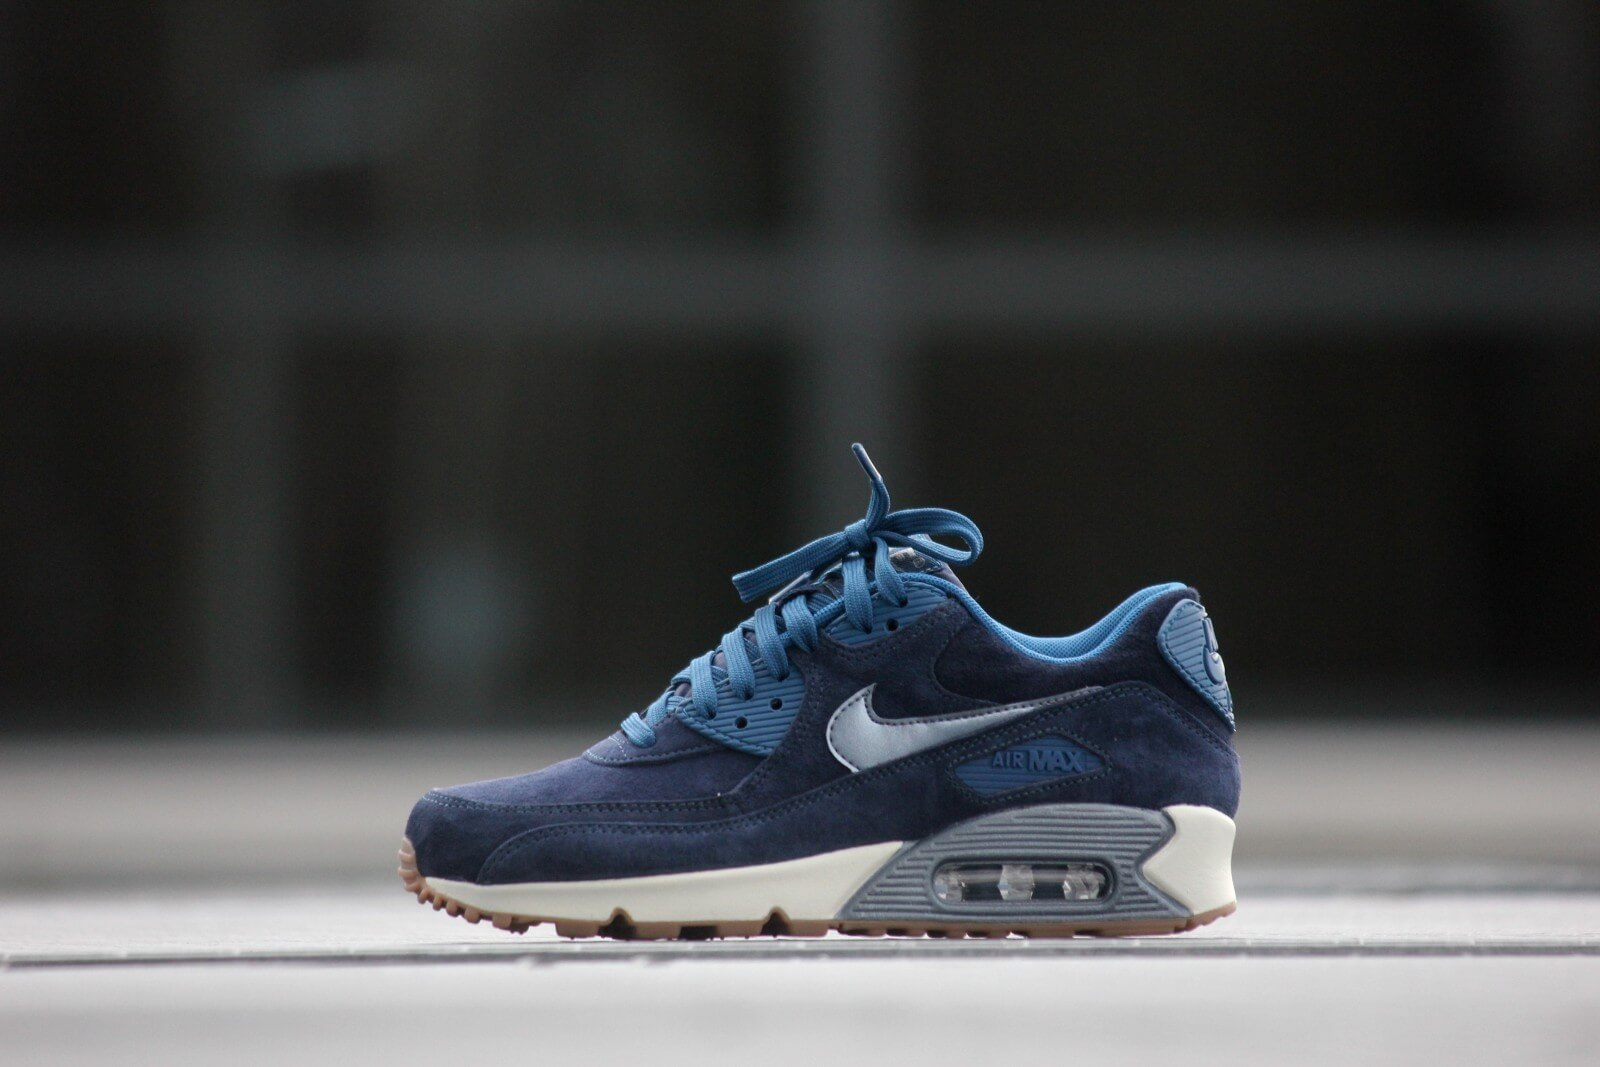 Nike Wmns Air Max 90 PRM Suede Midnight Navy - 818598-400